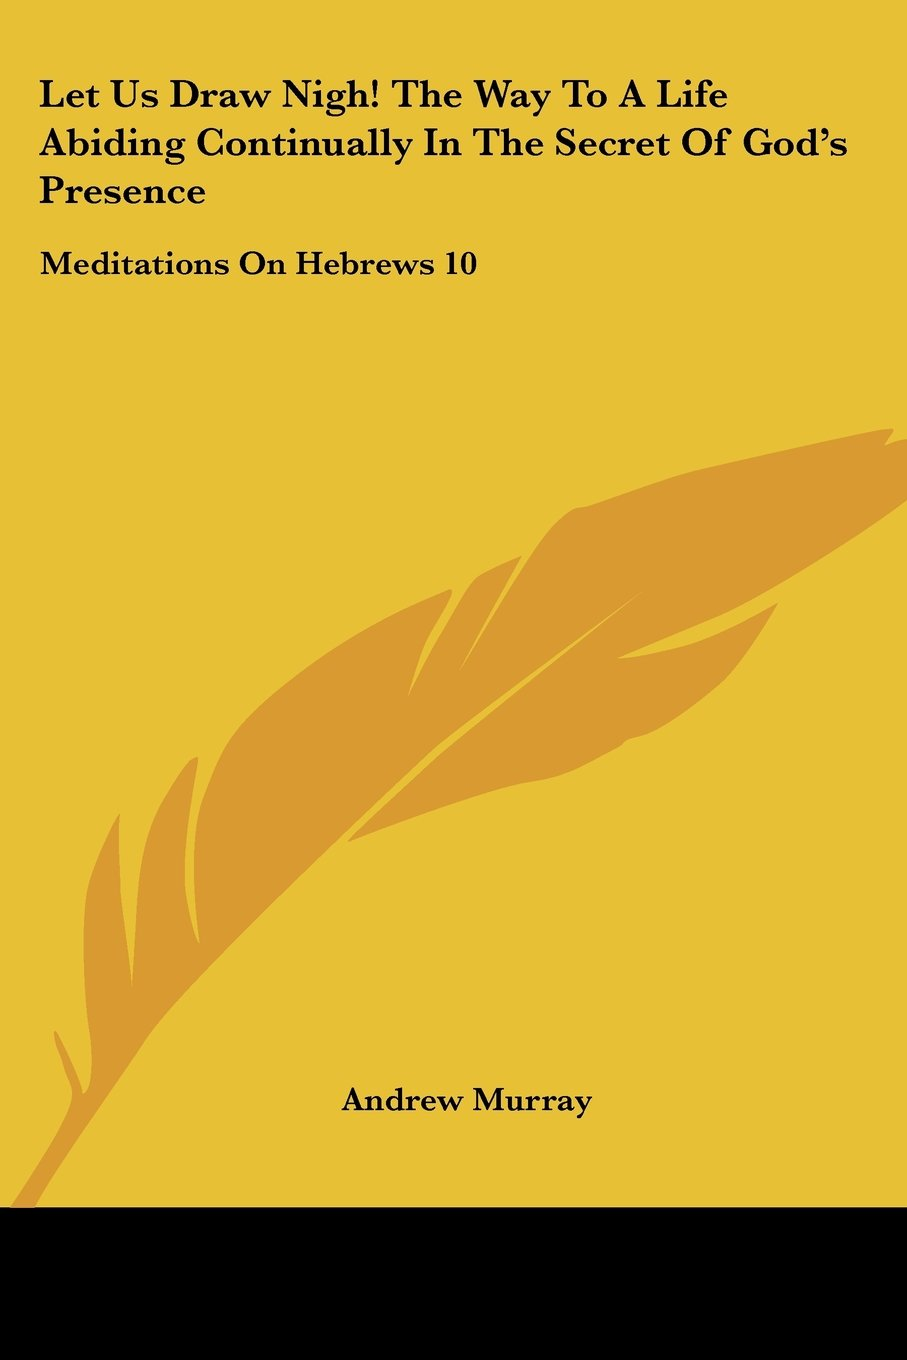 Let Us Draw Nigh! the Way to a Life Abiding Continually in the Secret of God's Presence: Meditations on Hebrews 10:19-25 (1895) pdf